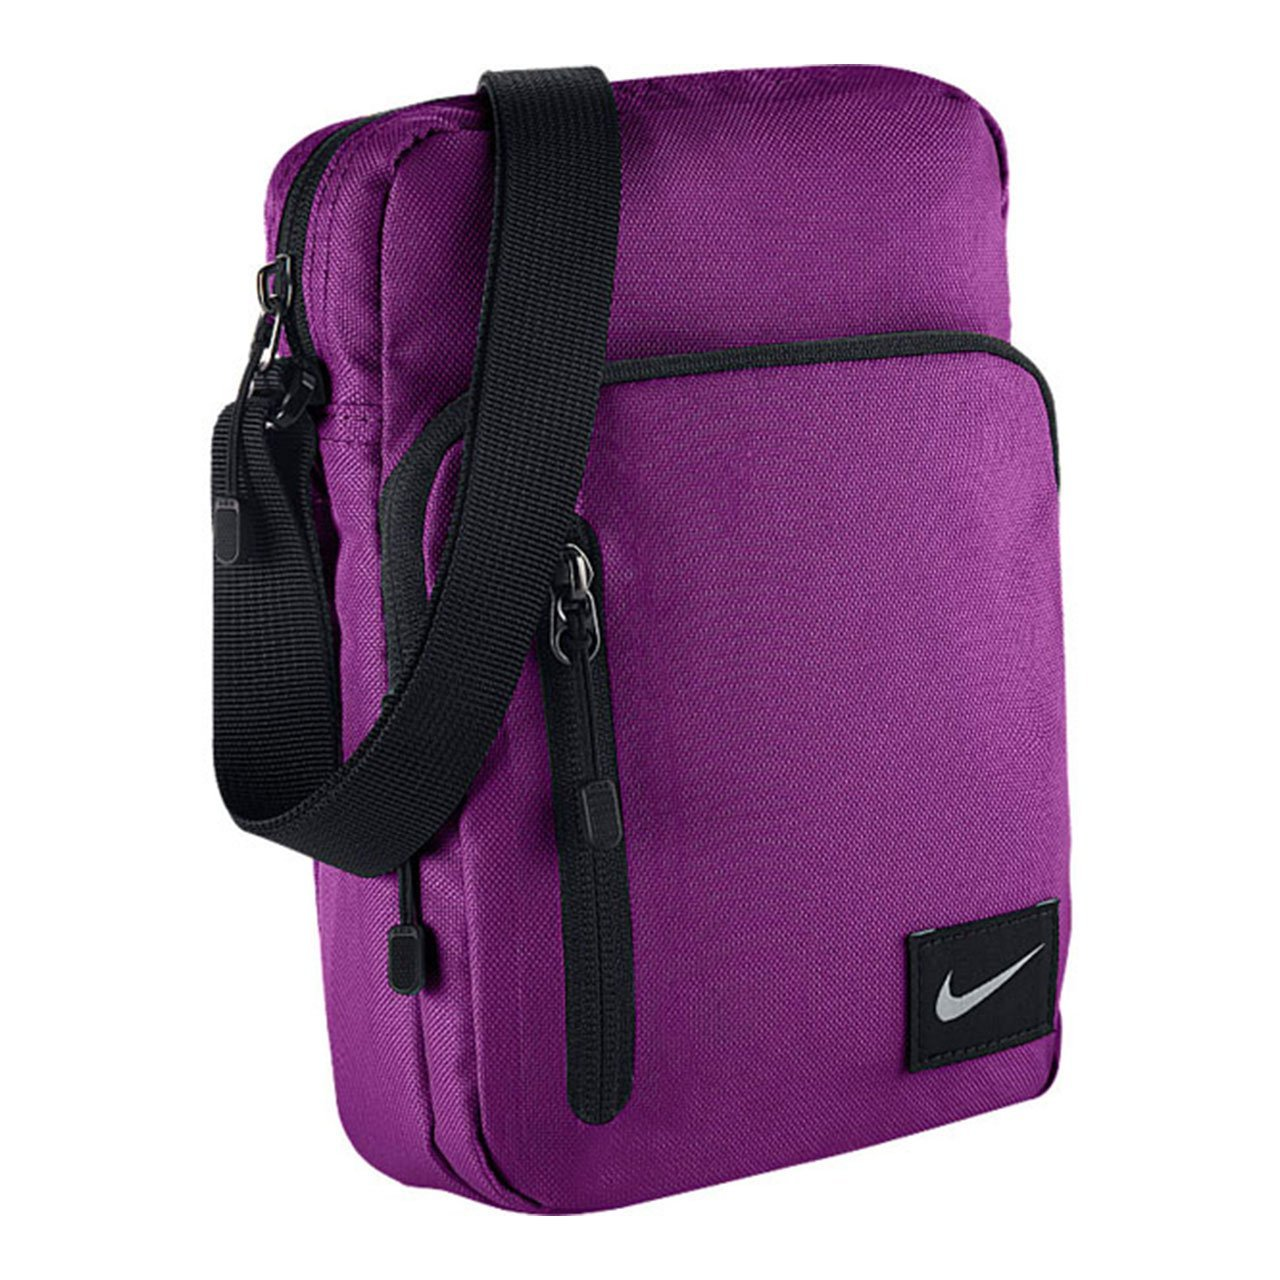 dab177267b0 Nike Core Small Items II Shoulder Bag for Hombr, One Size, Unisex adult, Core  Small Items Ii, violet black, one size  Amazon.co.uk  Sports   Outdoors